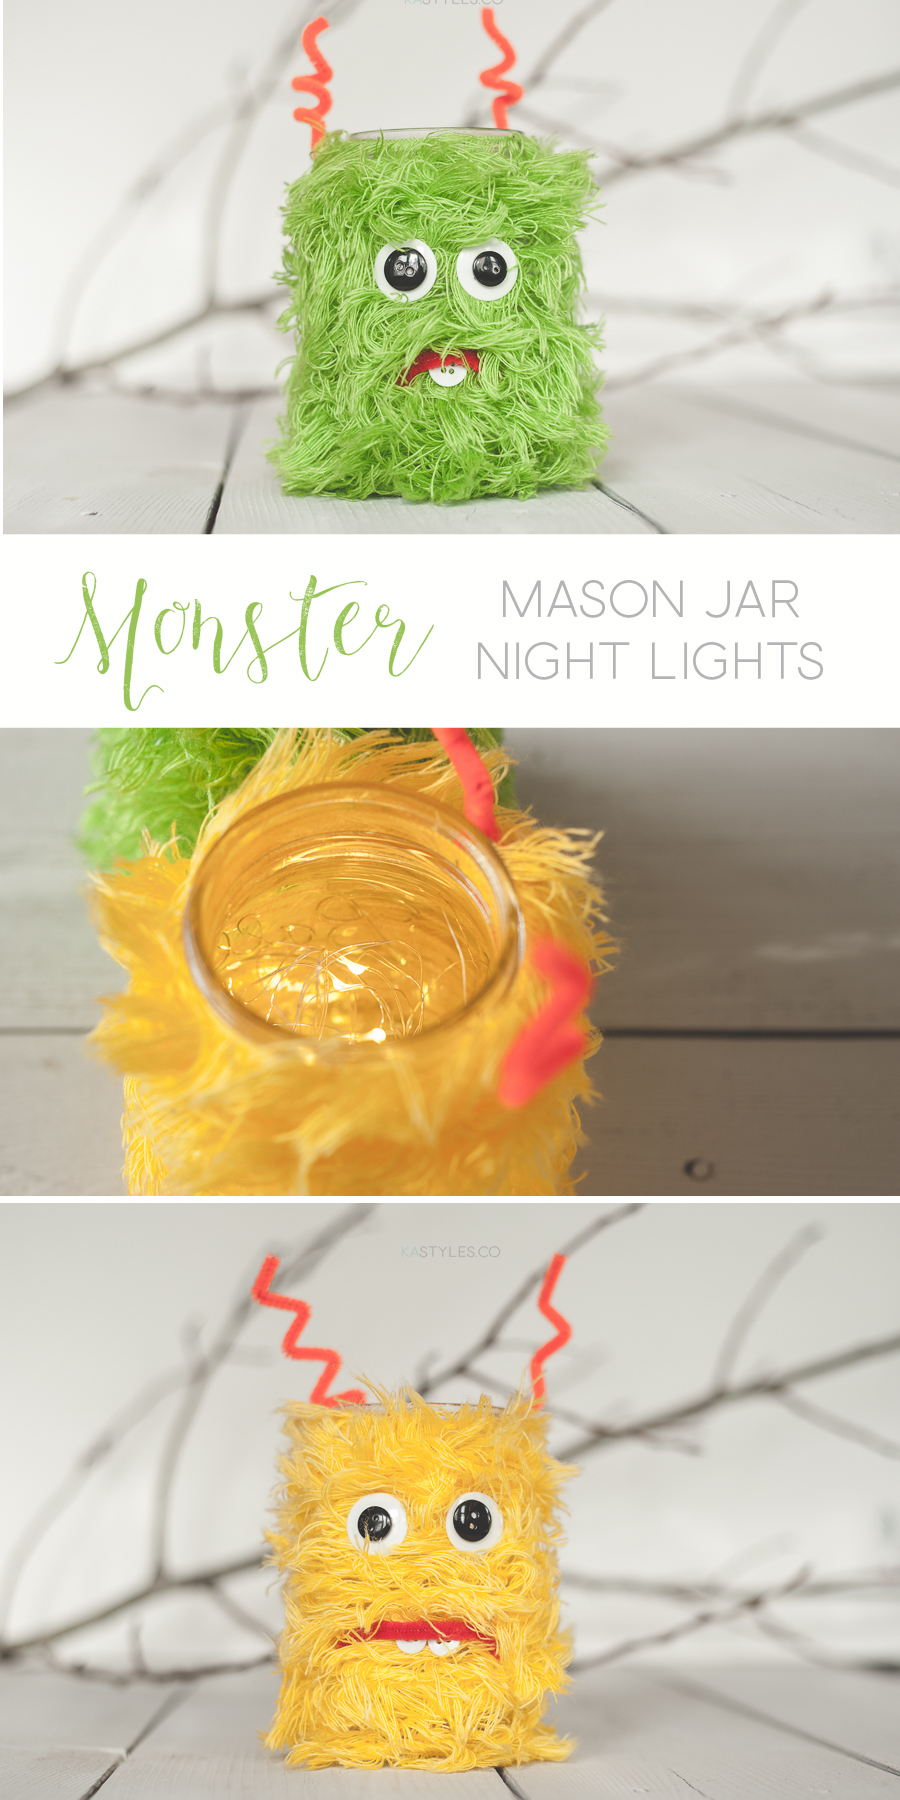 Eyelash yarm wrapped monster mason jar night lights with mini LED lights. Fun kids craft.